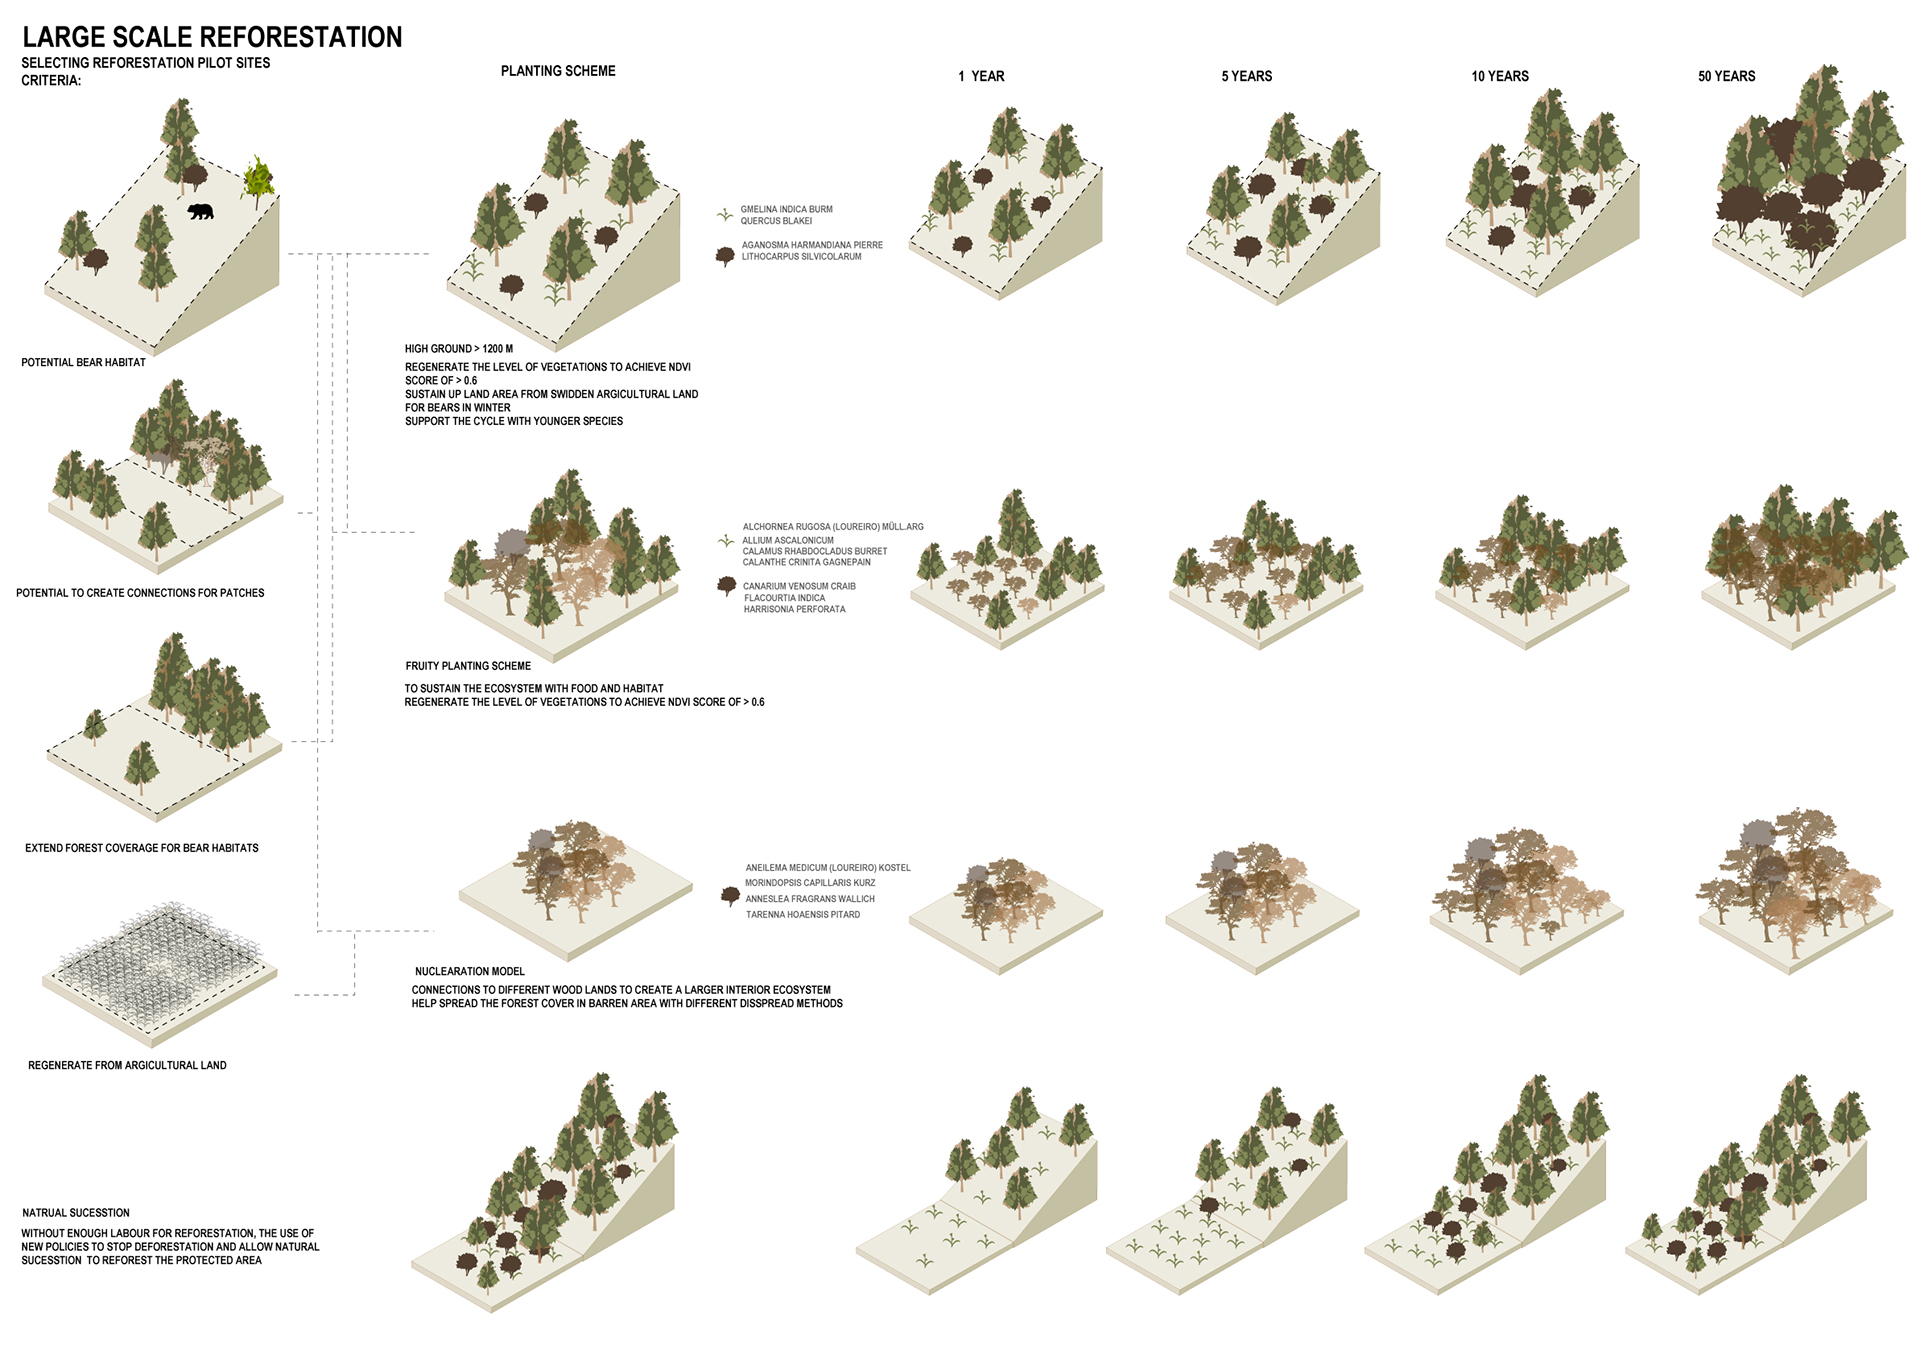 Enlarge Photo: The complex topography combined with rapid deforestation in Luang Prabang reduced the habitability for bears. A series of planting schemes in selected pilot sites for various purposes were then developed in preparation for bear rewilding. By MA On Ki Rachel, LEE Chi Hang Haven.